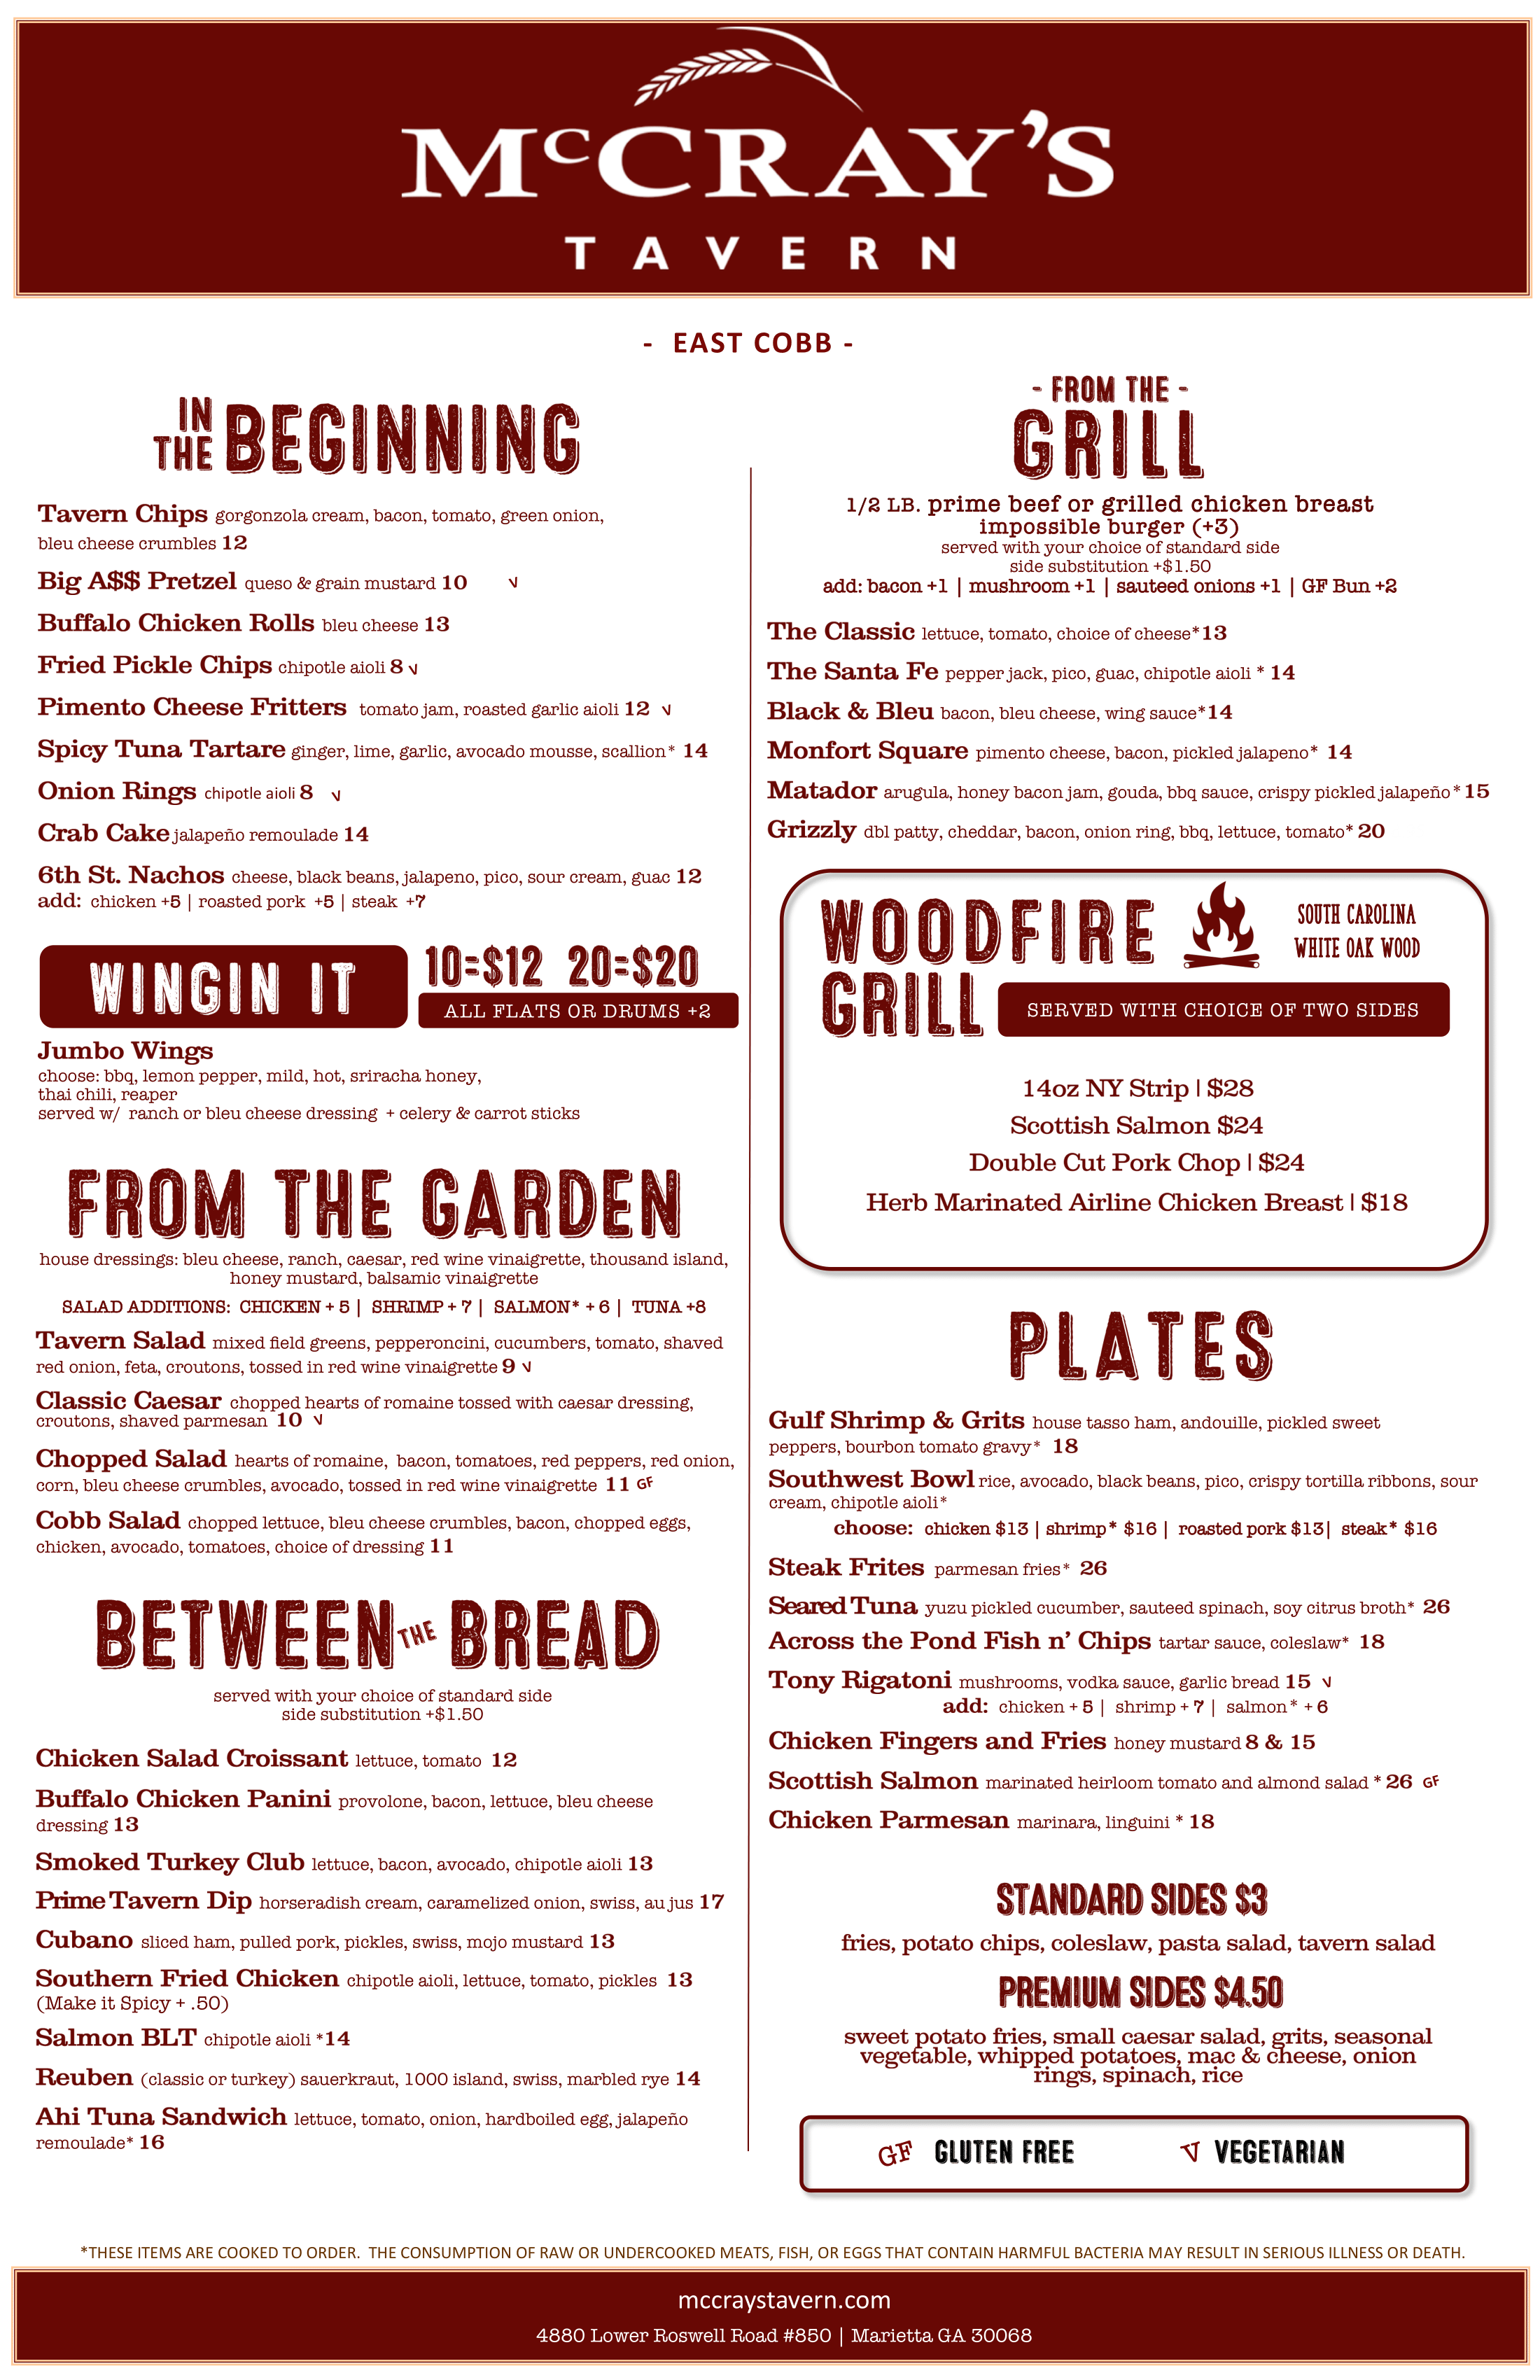 East Cobb Menu